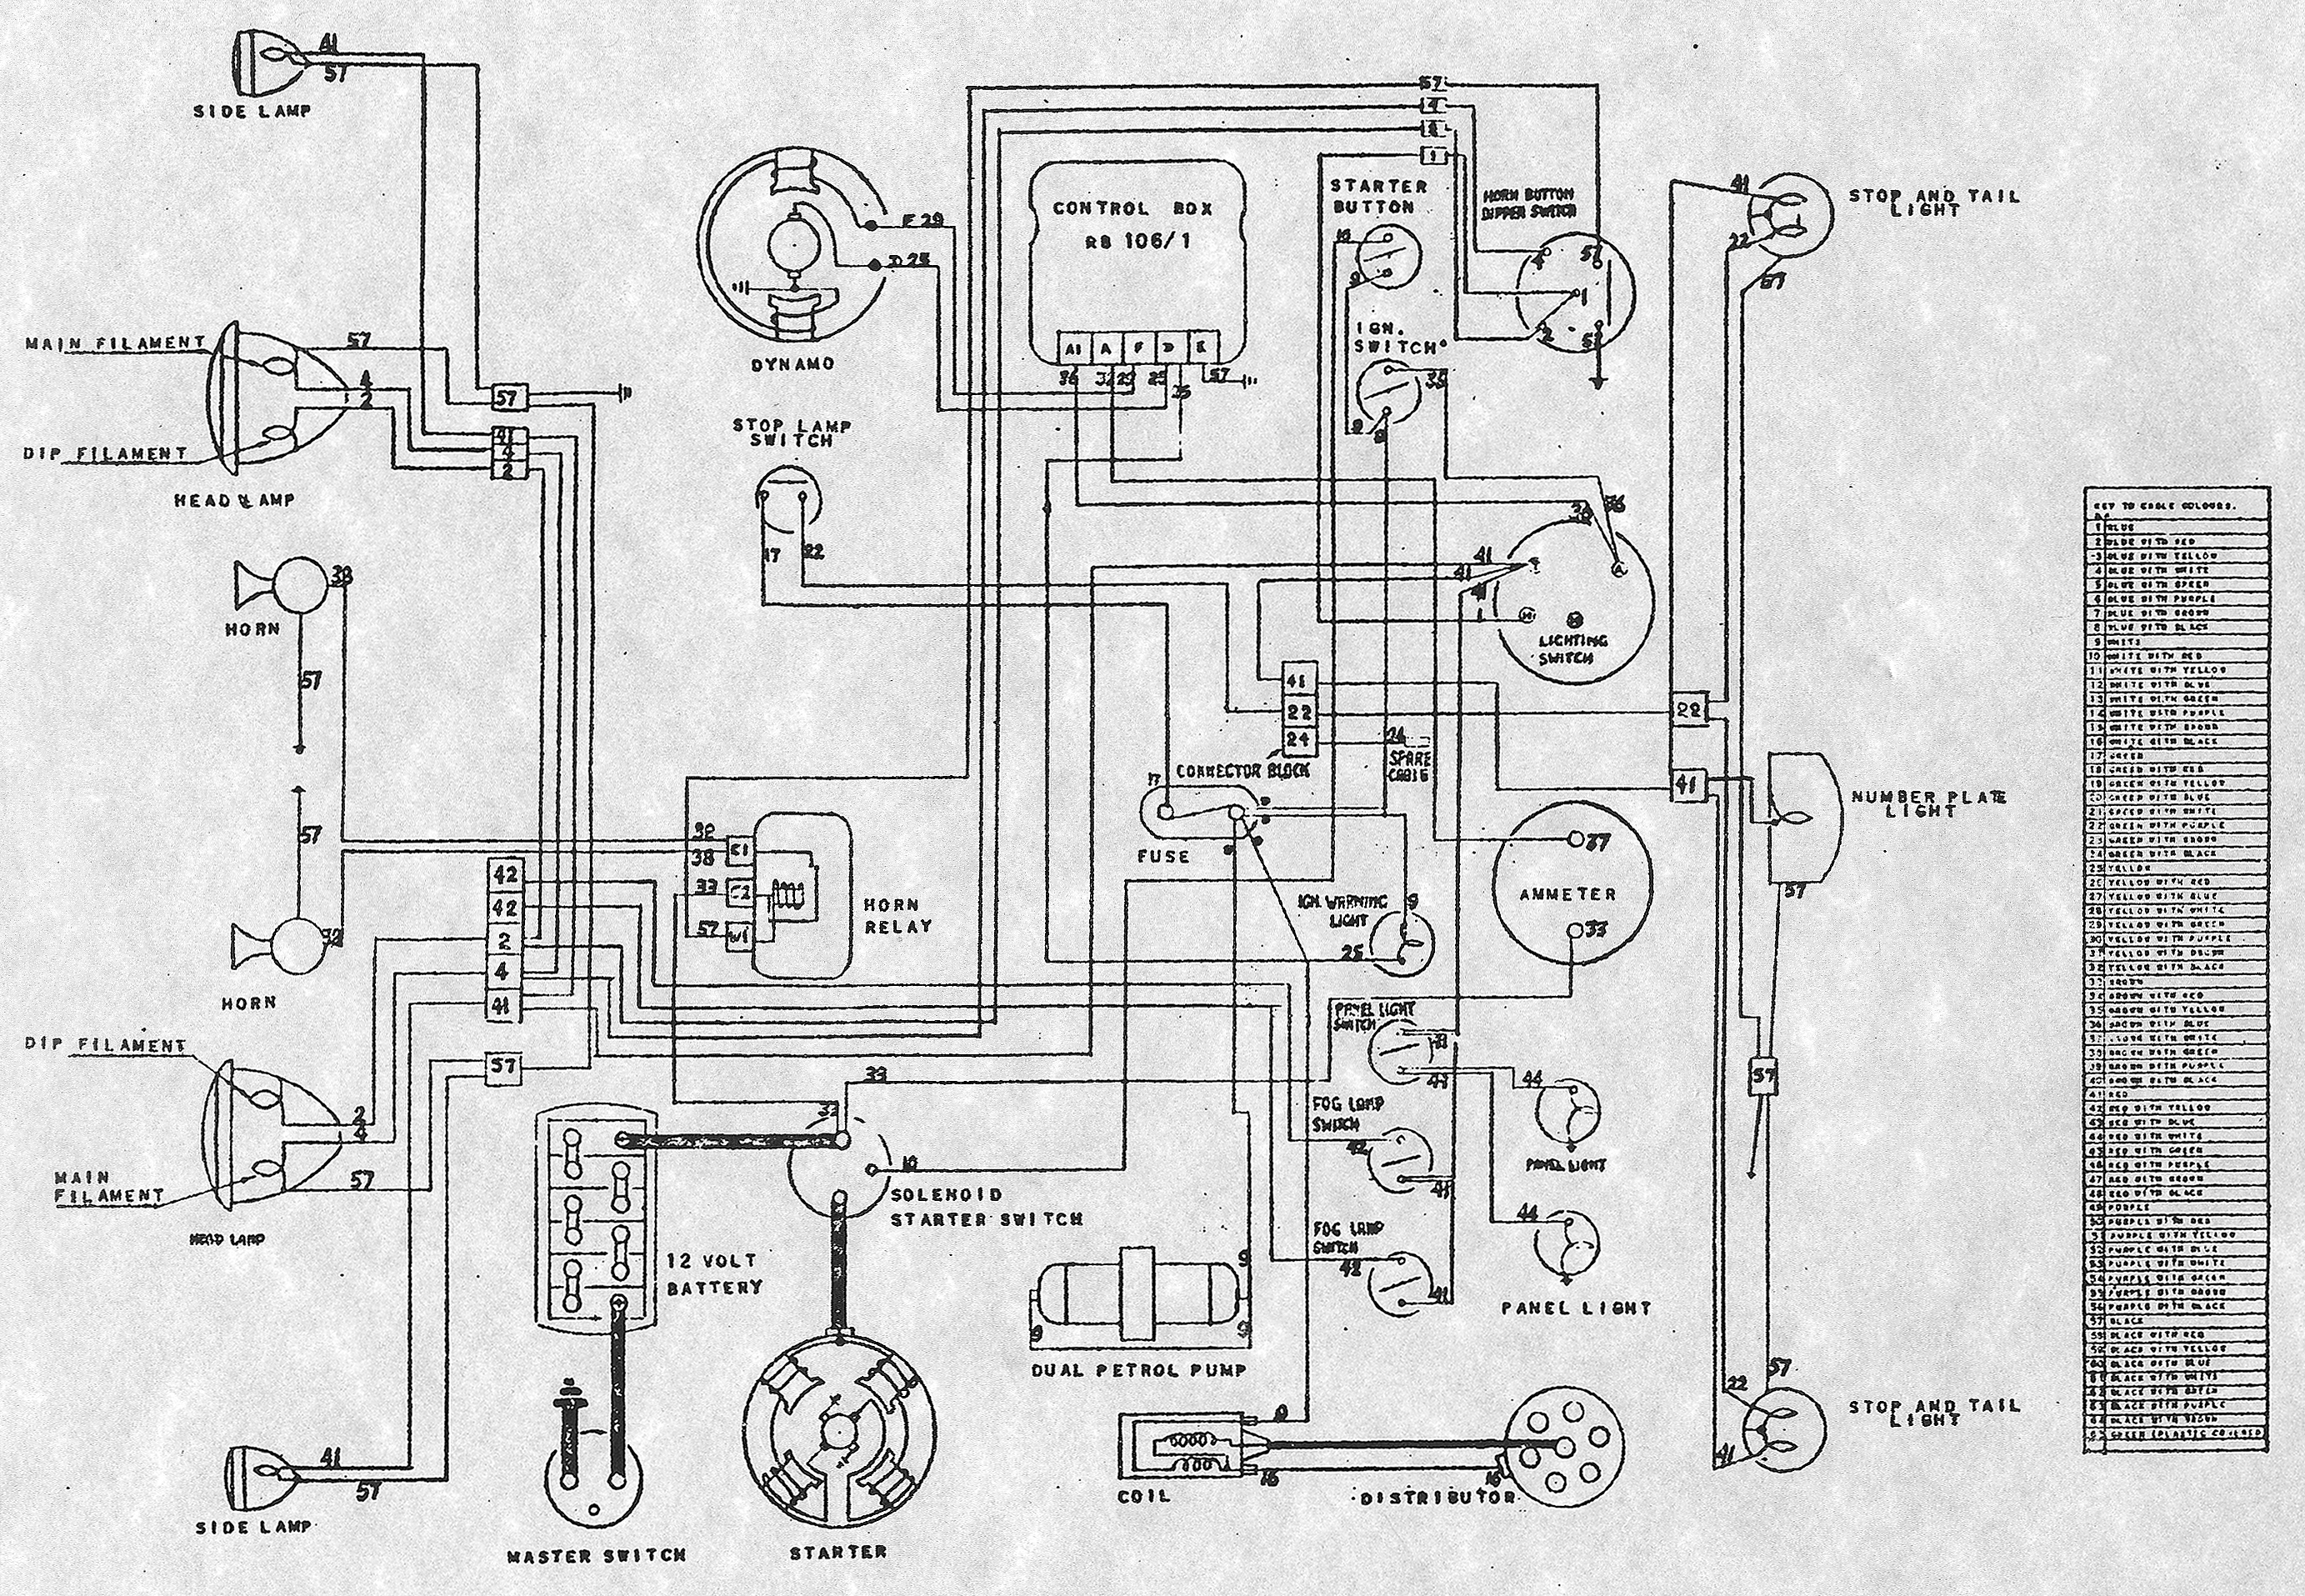 db3swiring wiring diagram for 1980 mgb yhgfdmuor net 1980 mgb wiring diagram at edmiracle.co